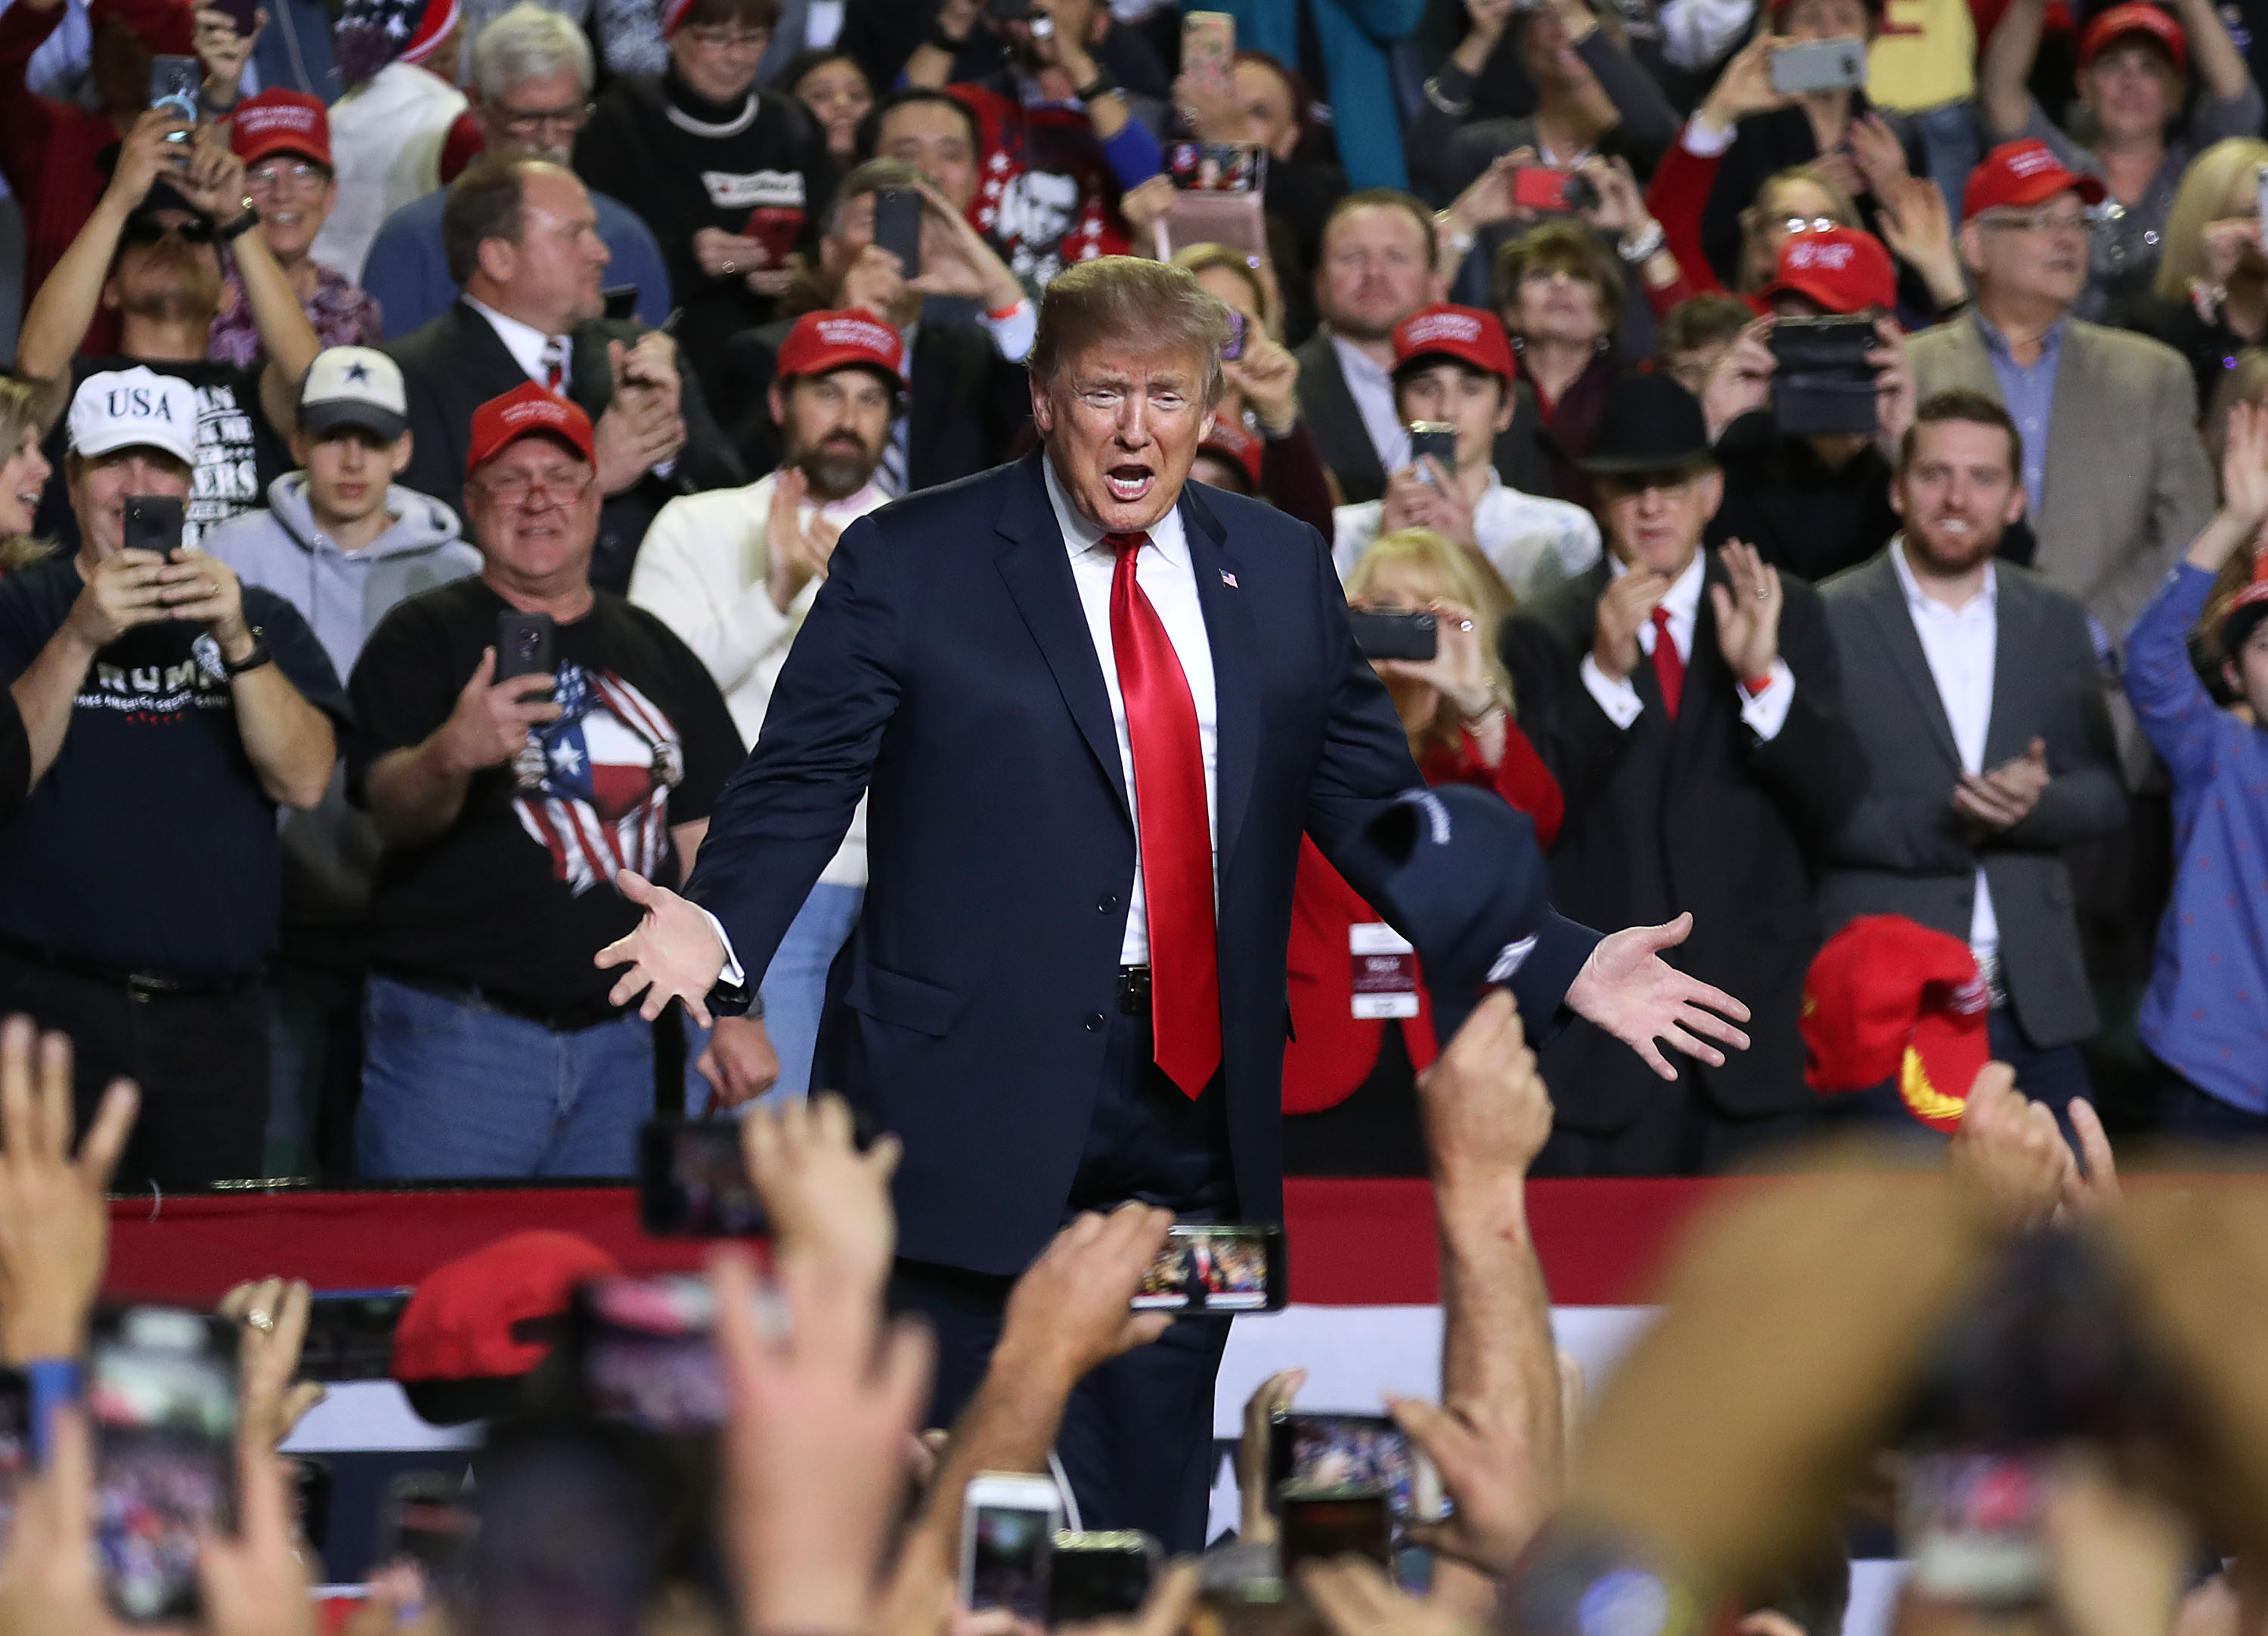 U.S. President Donald Trump attends a rally at the El Paso County